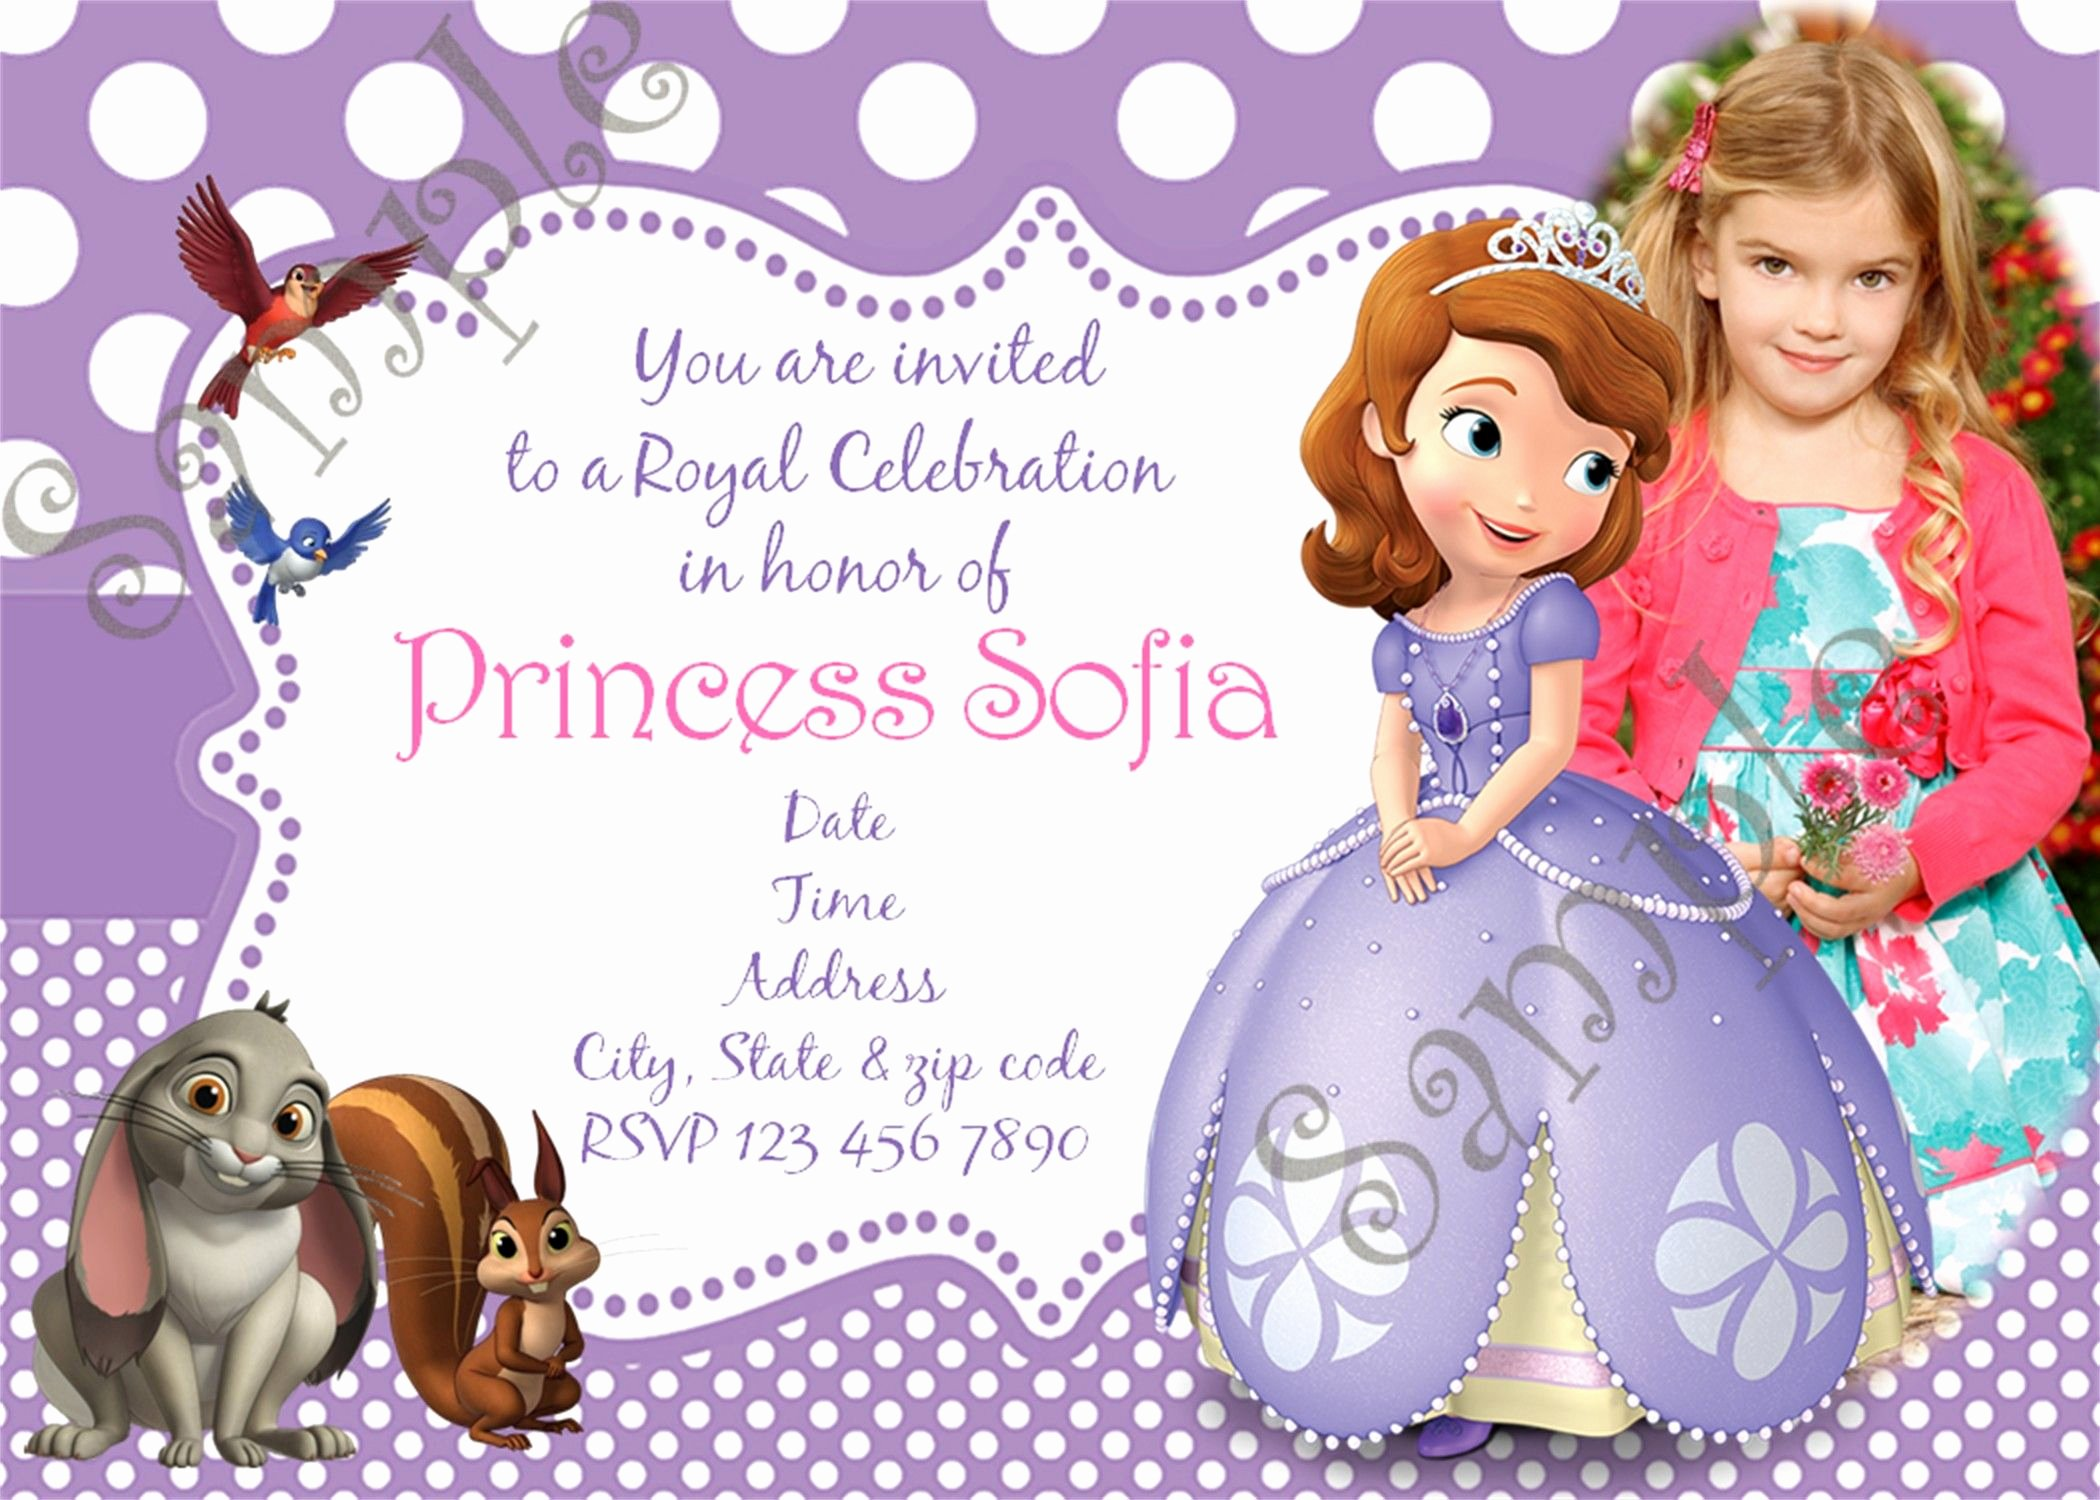 Sofia the First Invitation Templates Beautiful sofia the First Birthday Party Invitation sofia the First Birthday Party